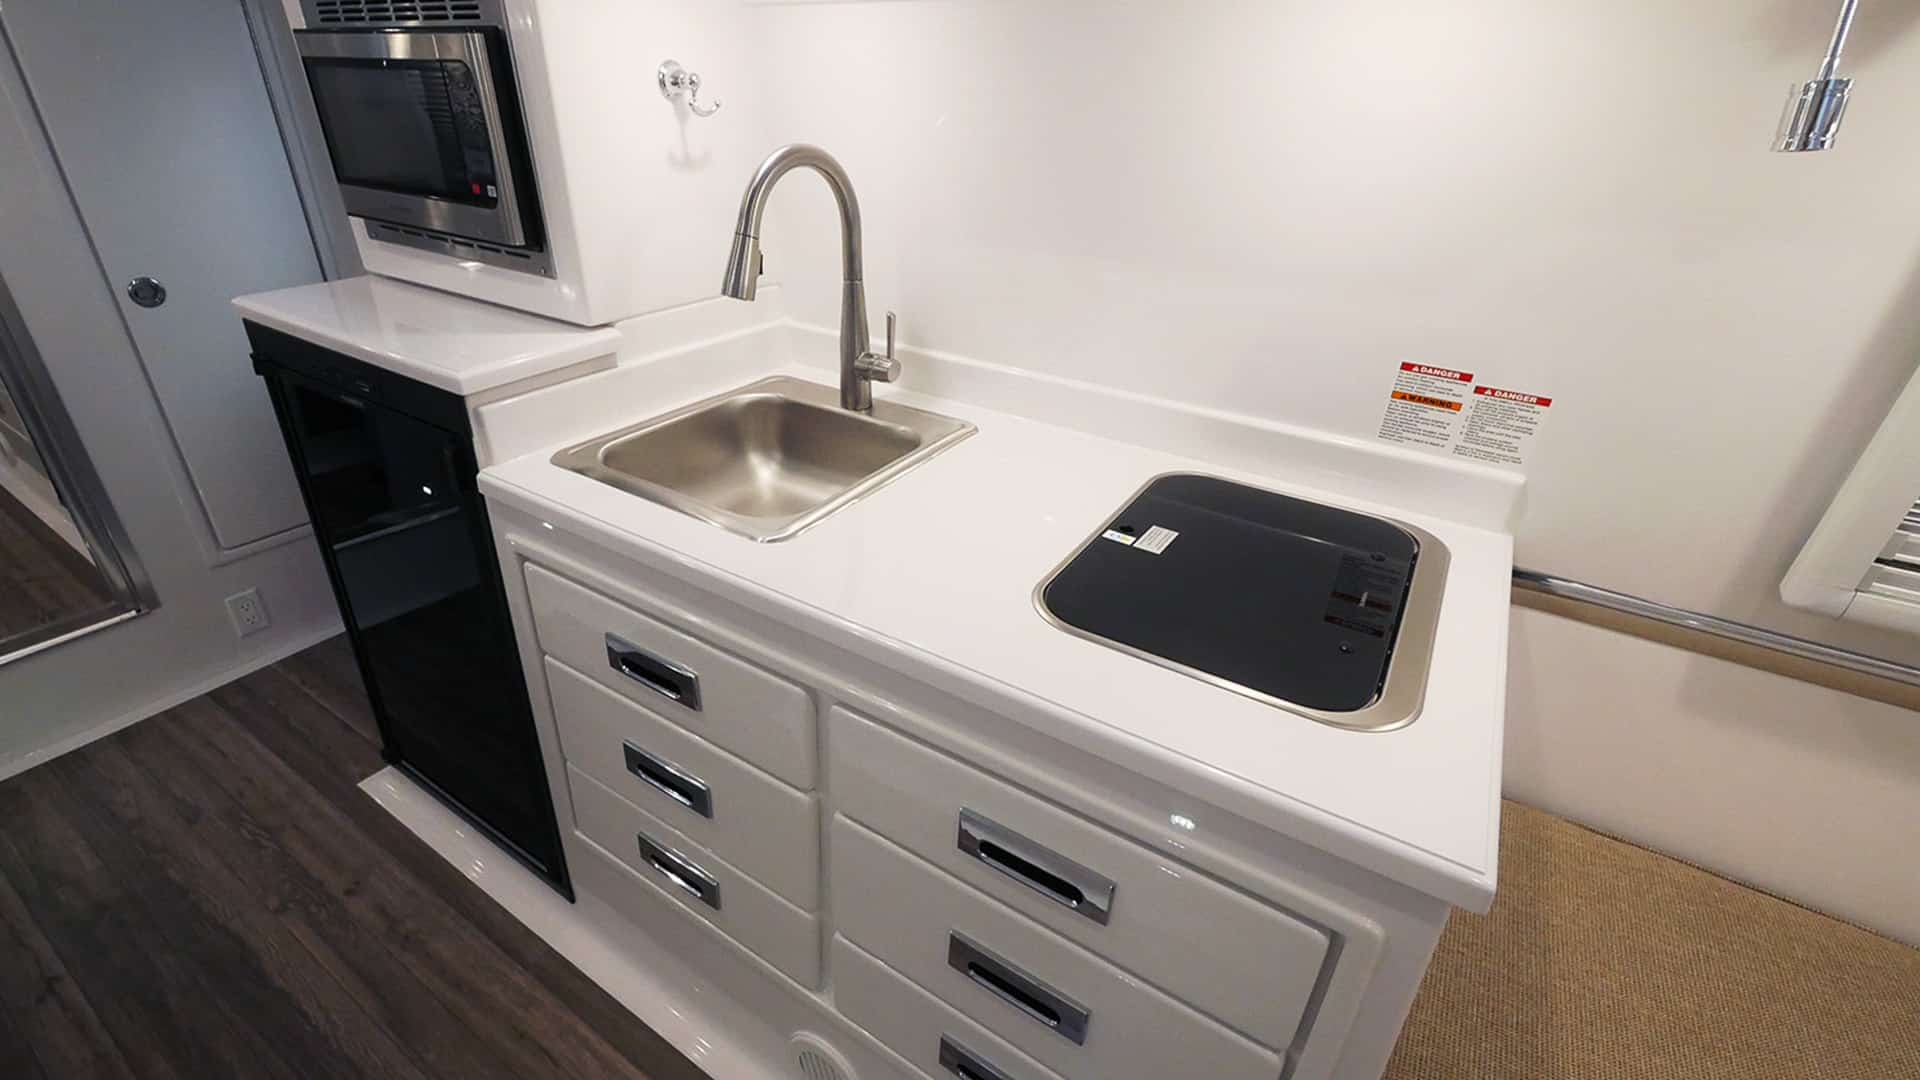 oliver travel trailers standard fiberglass kitchen counter-tops